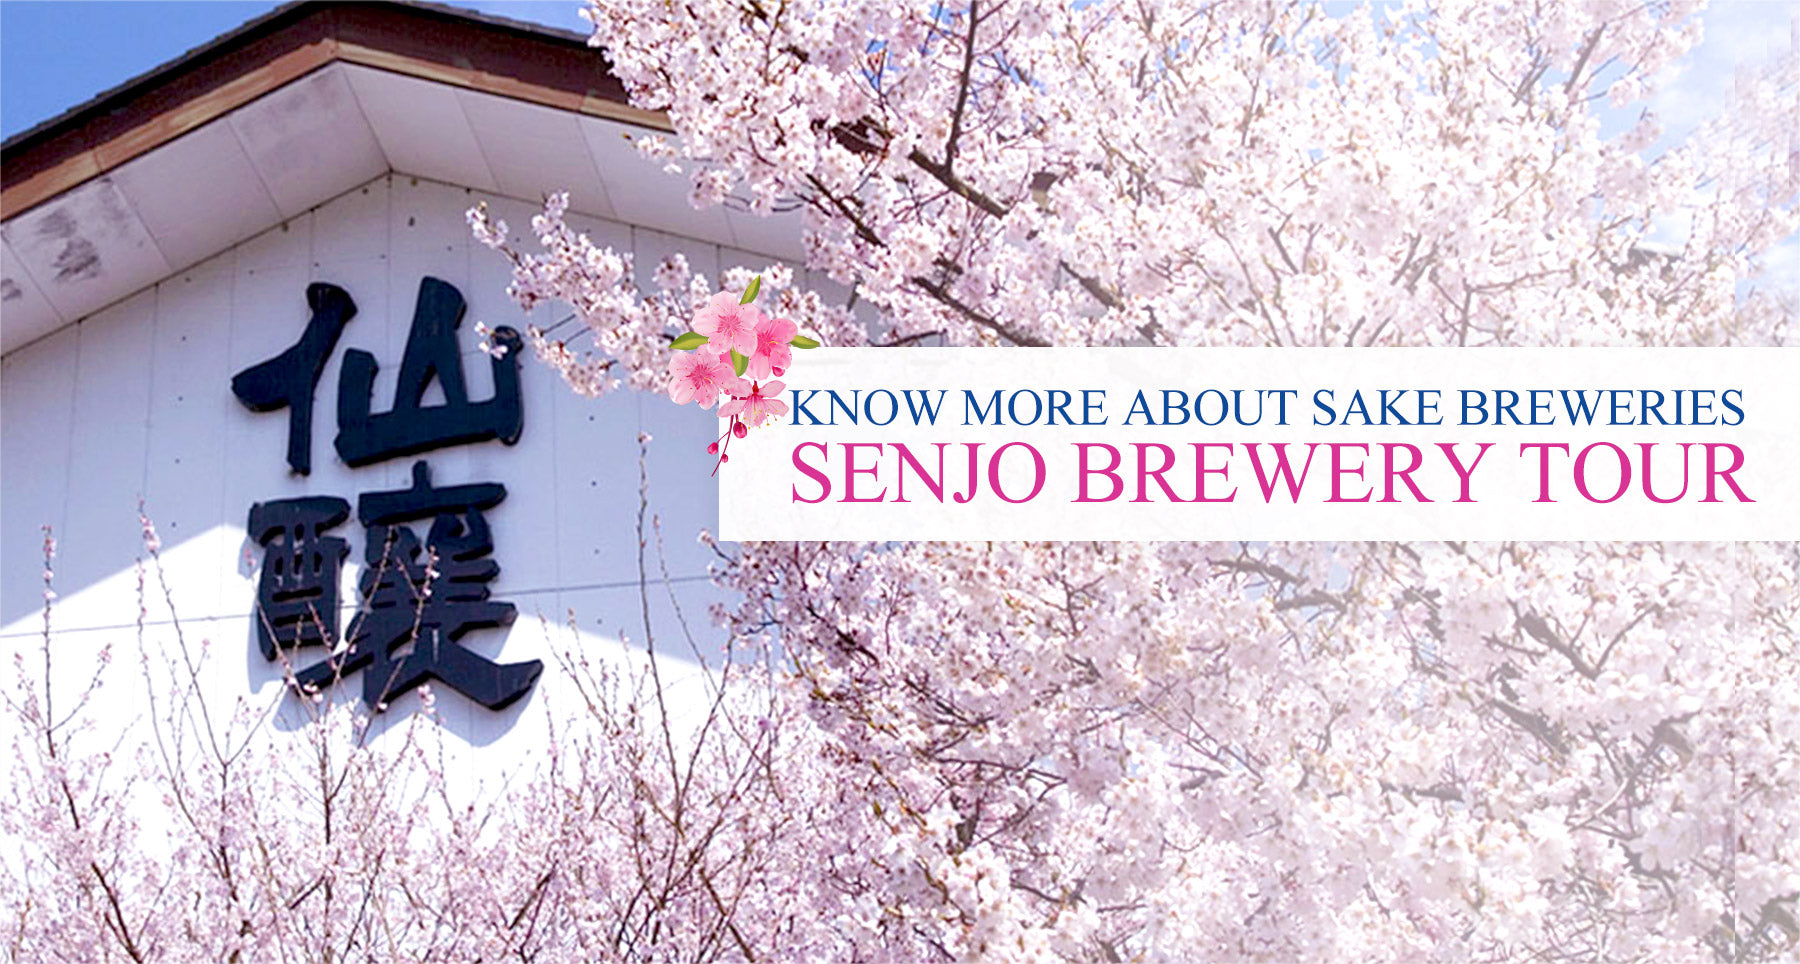 Saketora - Know more about sake breweries - Senjo Brewery Tour